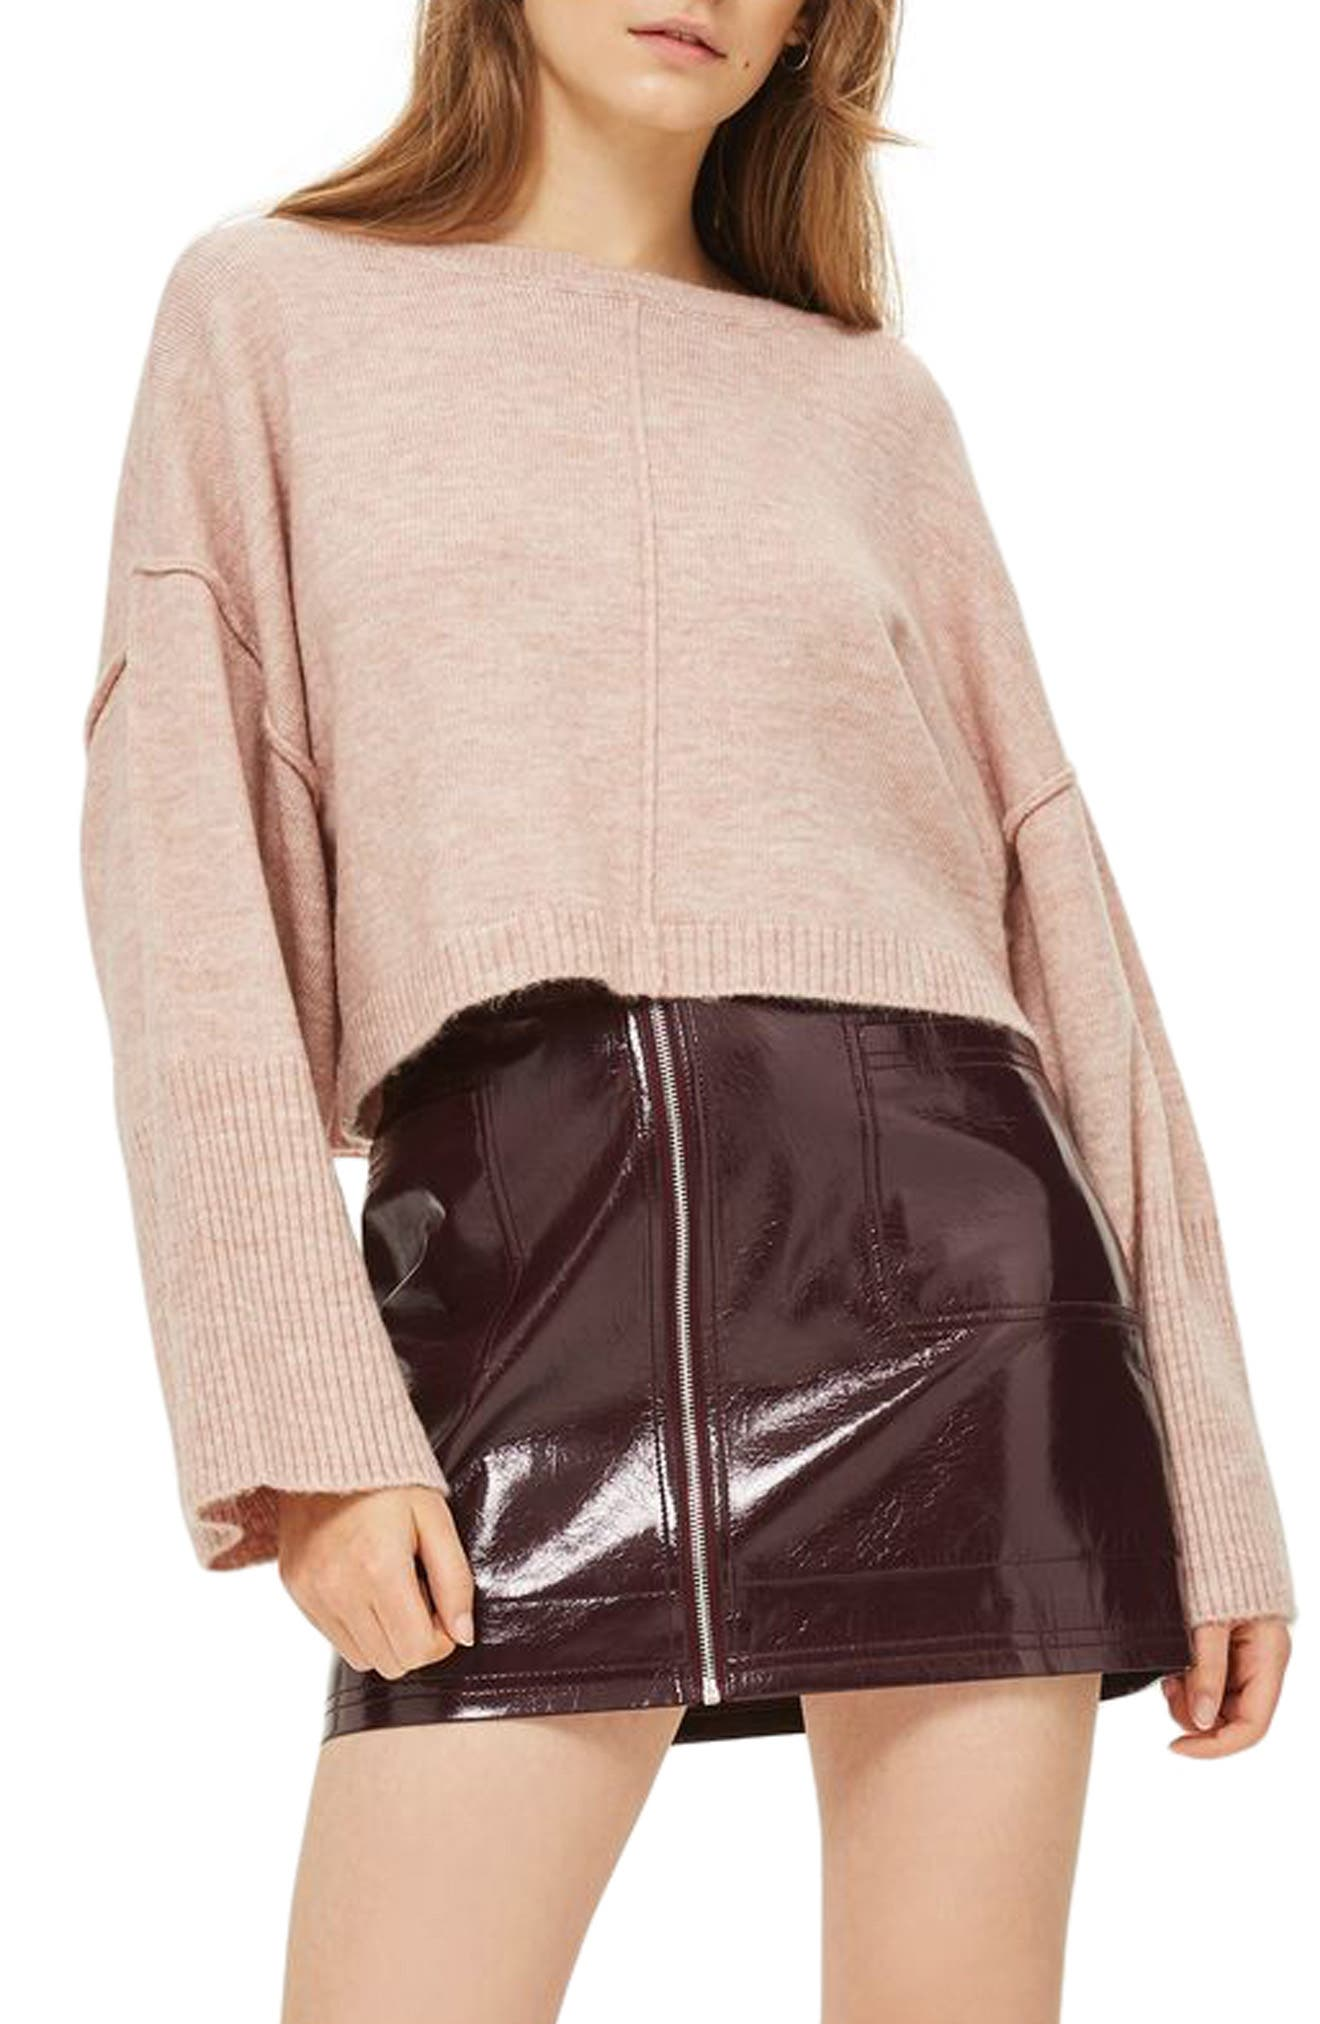 Topshop Wide Sleeve Crop Sweater